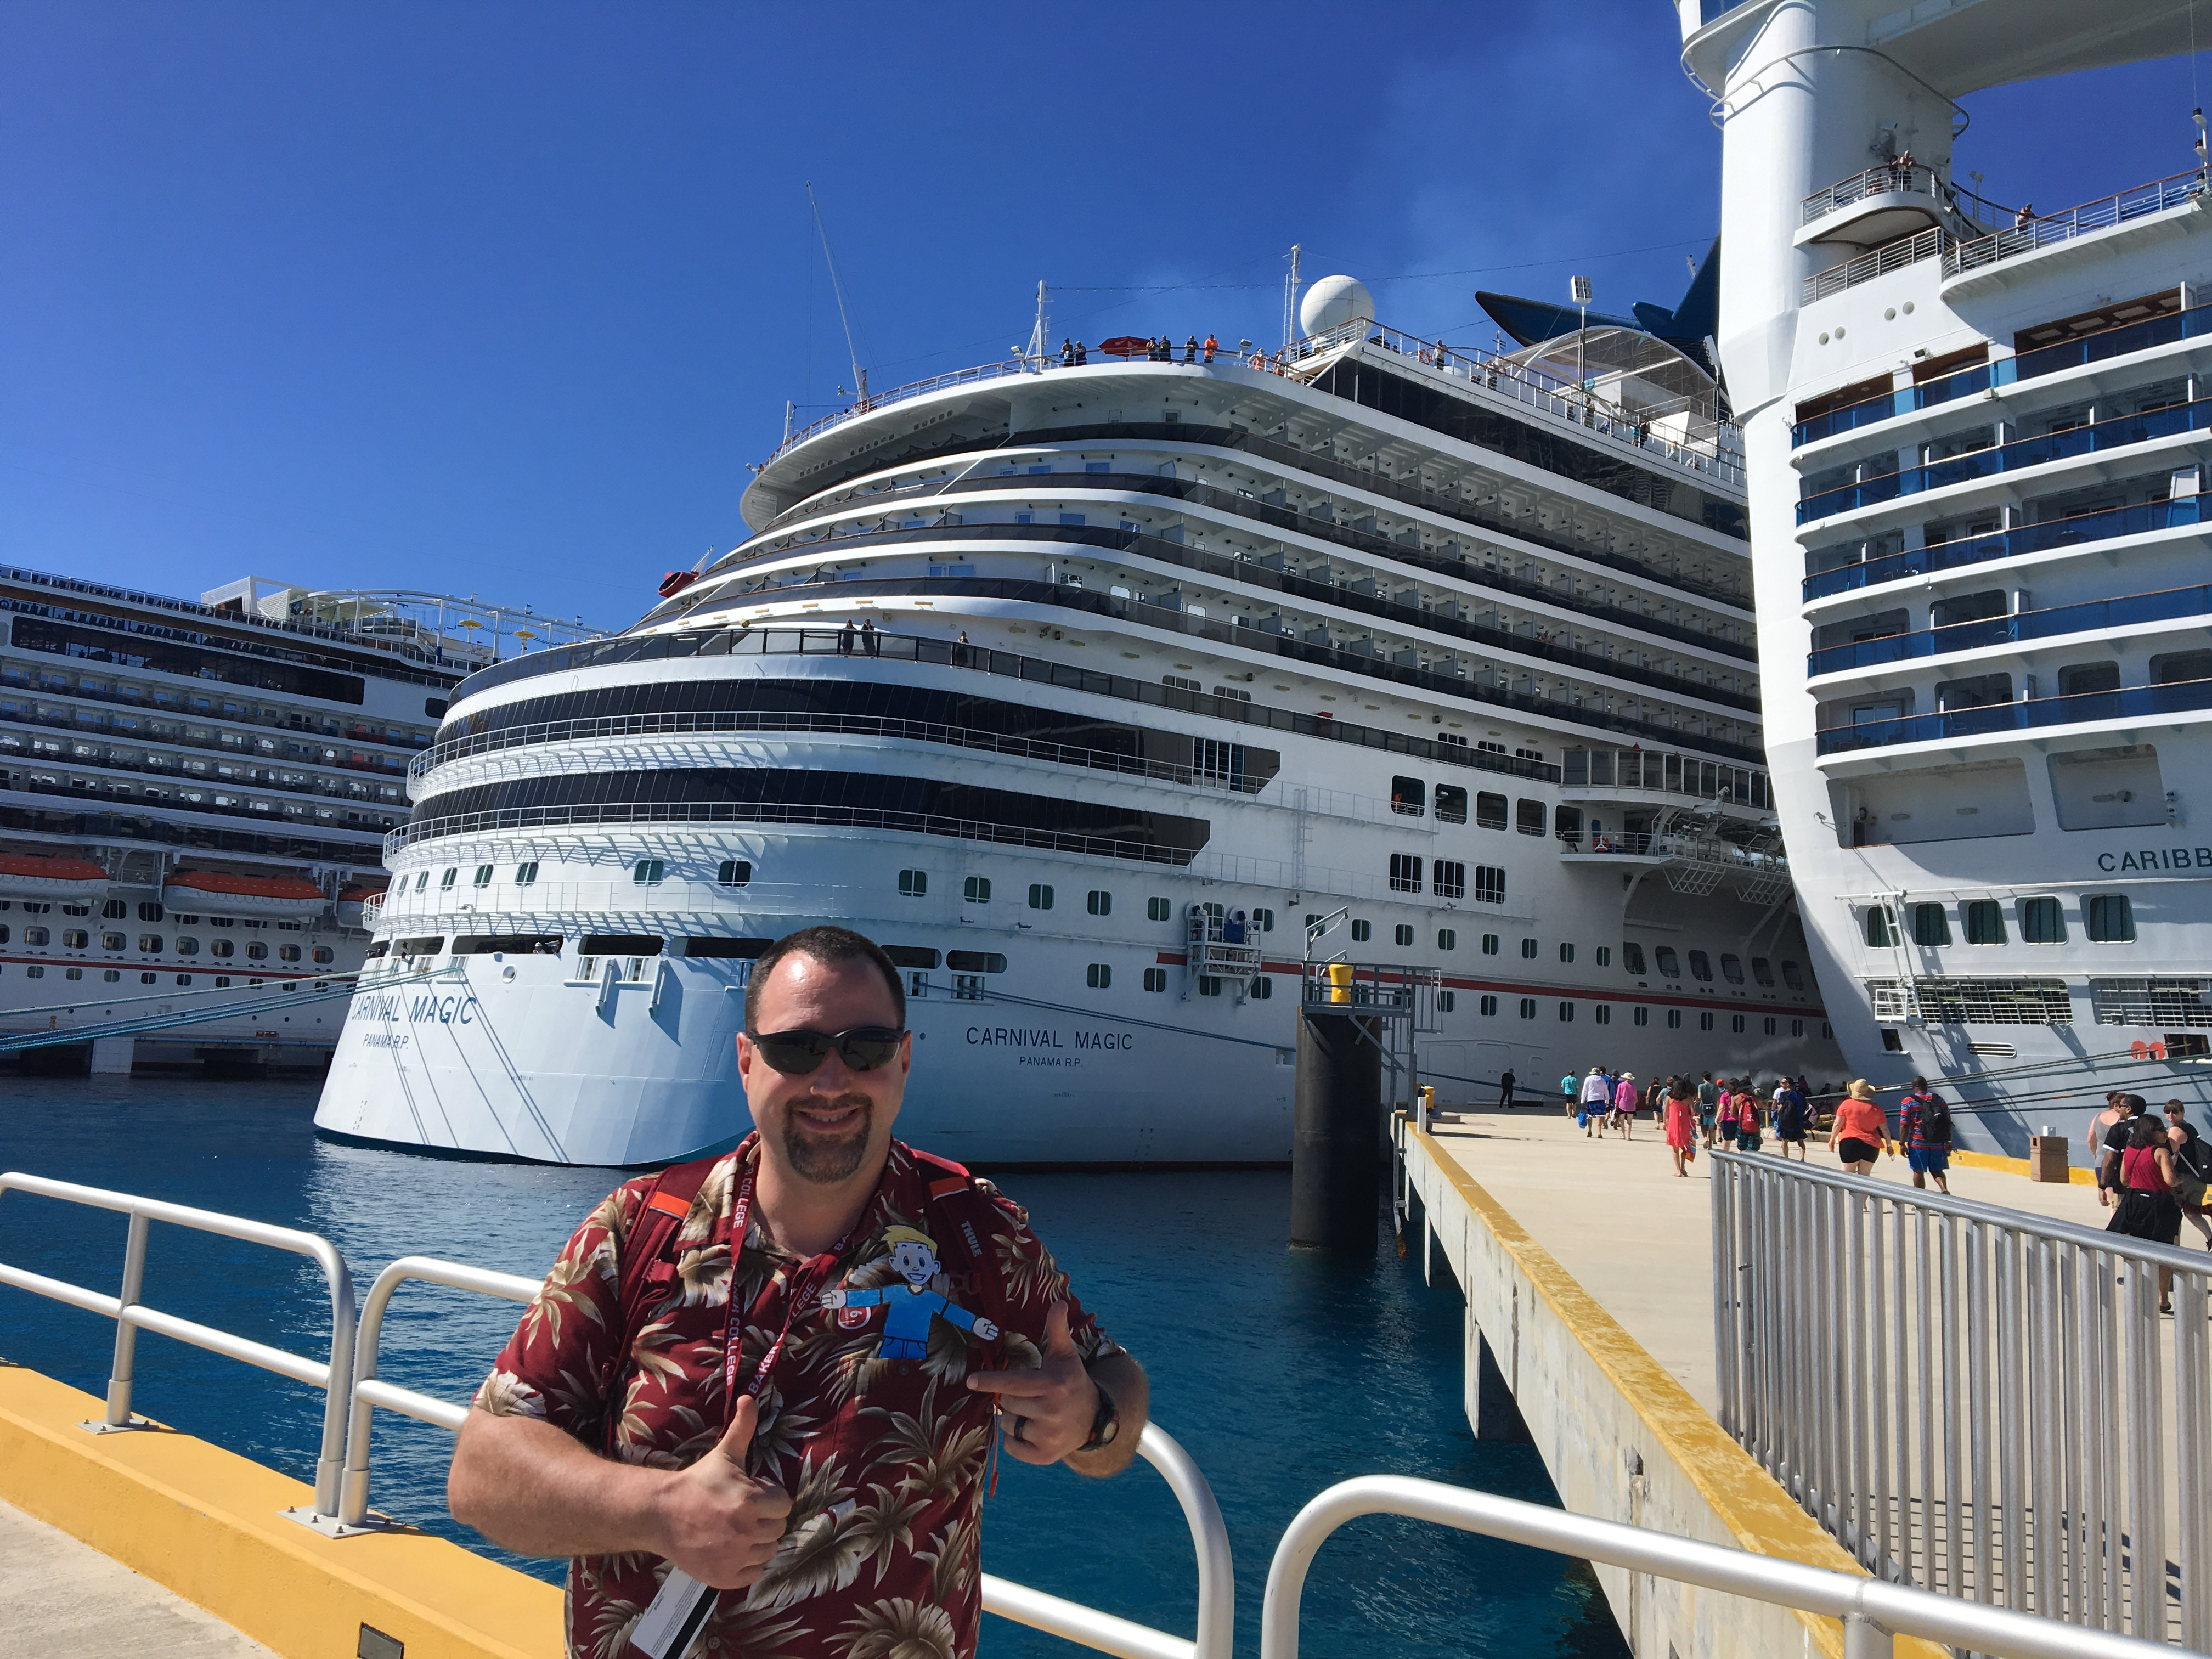 Make it your cruise! Use these tips from seasoned cruisers to make it awesome. (Cheryl Welch | Travel Beat Magazine)